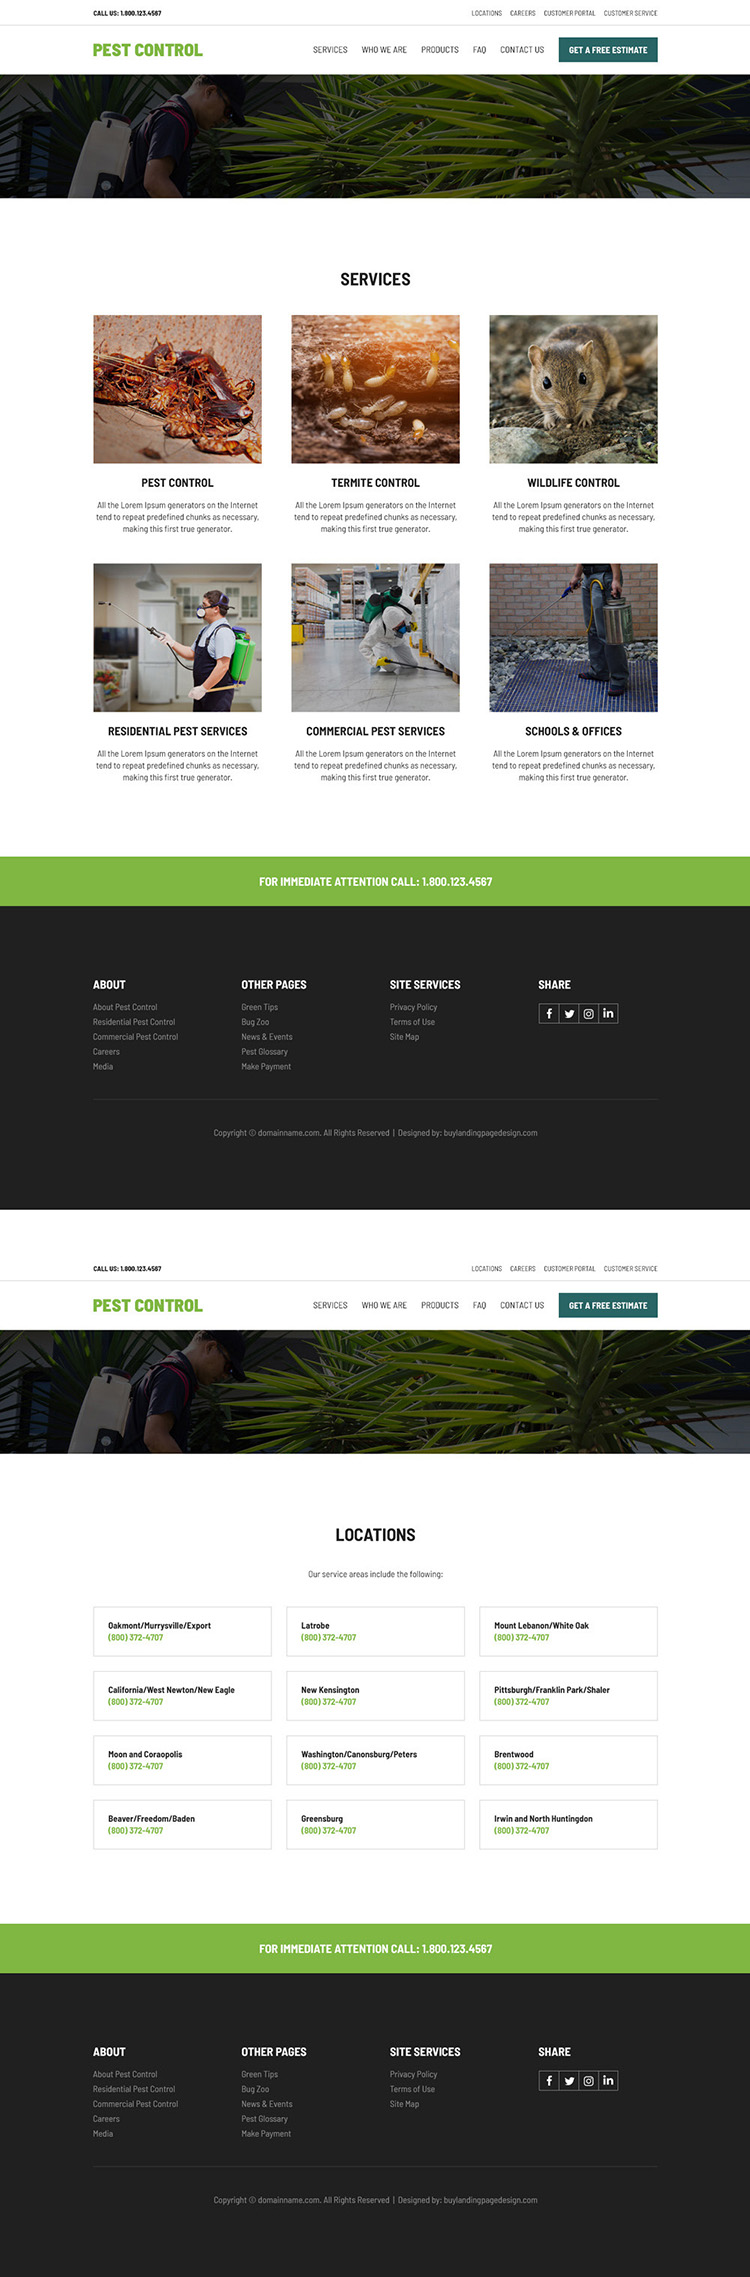 pest control product and services responsive website design